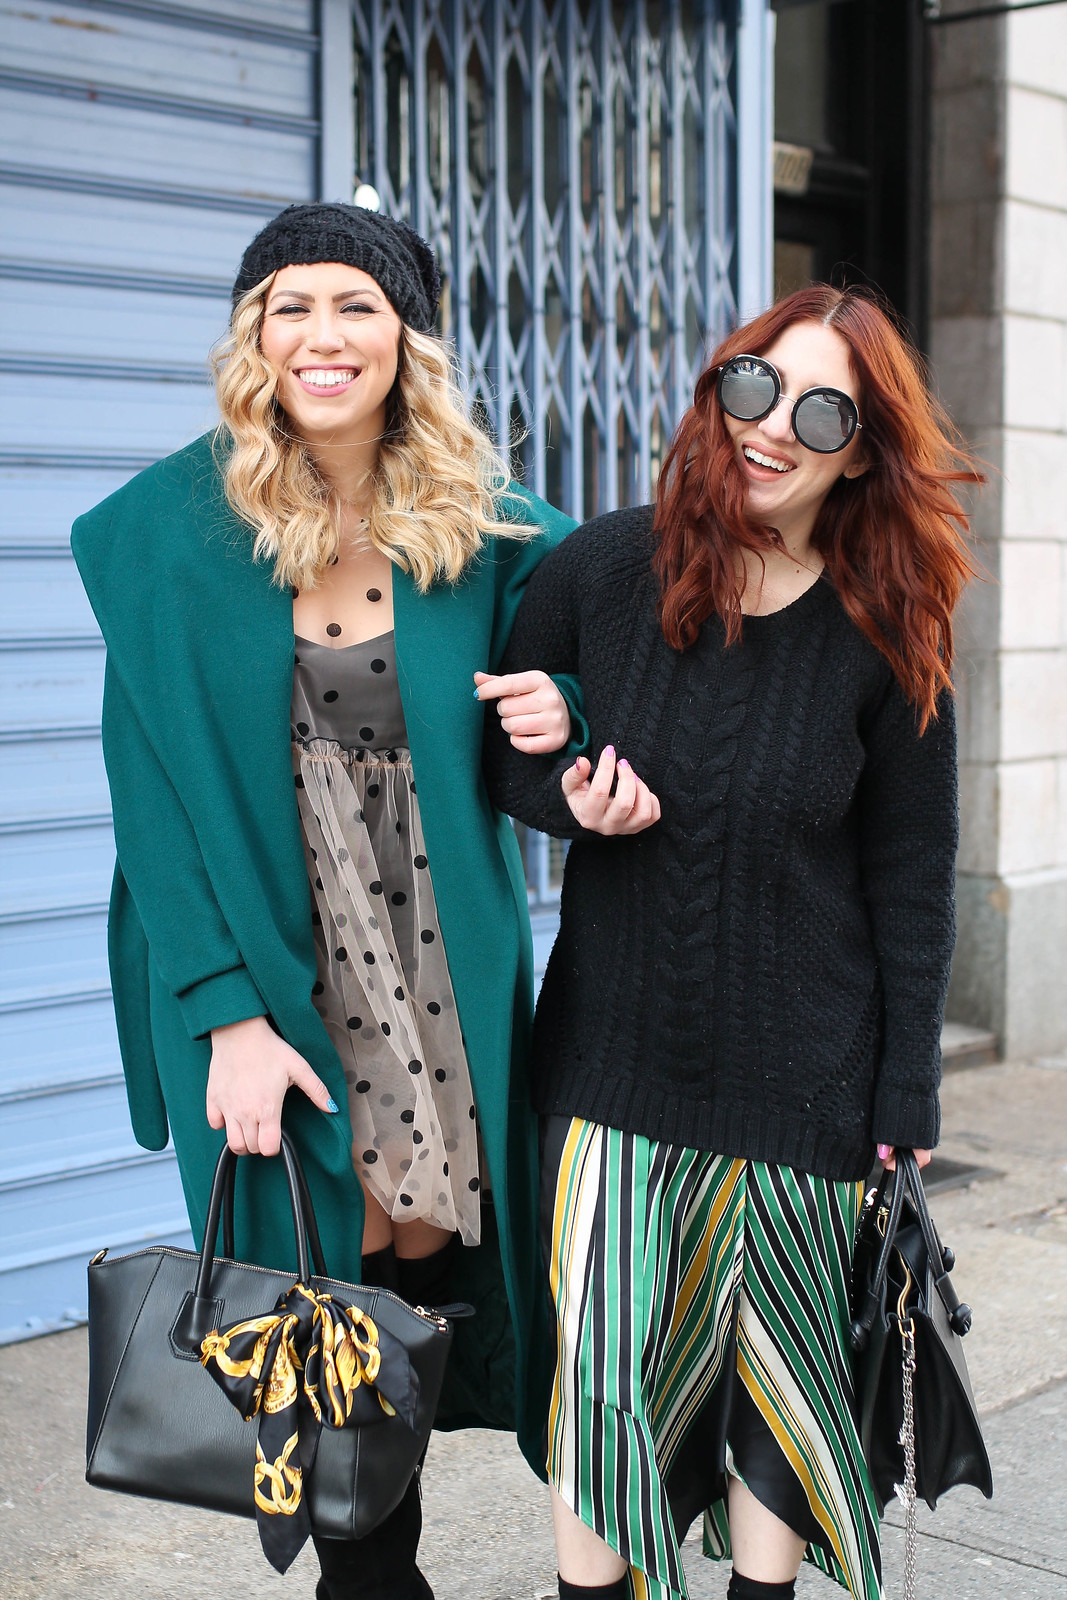 Early Spring Chilly Weather Outfit Inspiration Laughing Fun Photoshoot